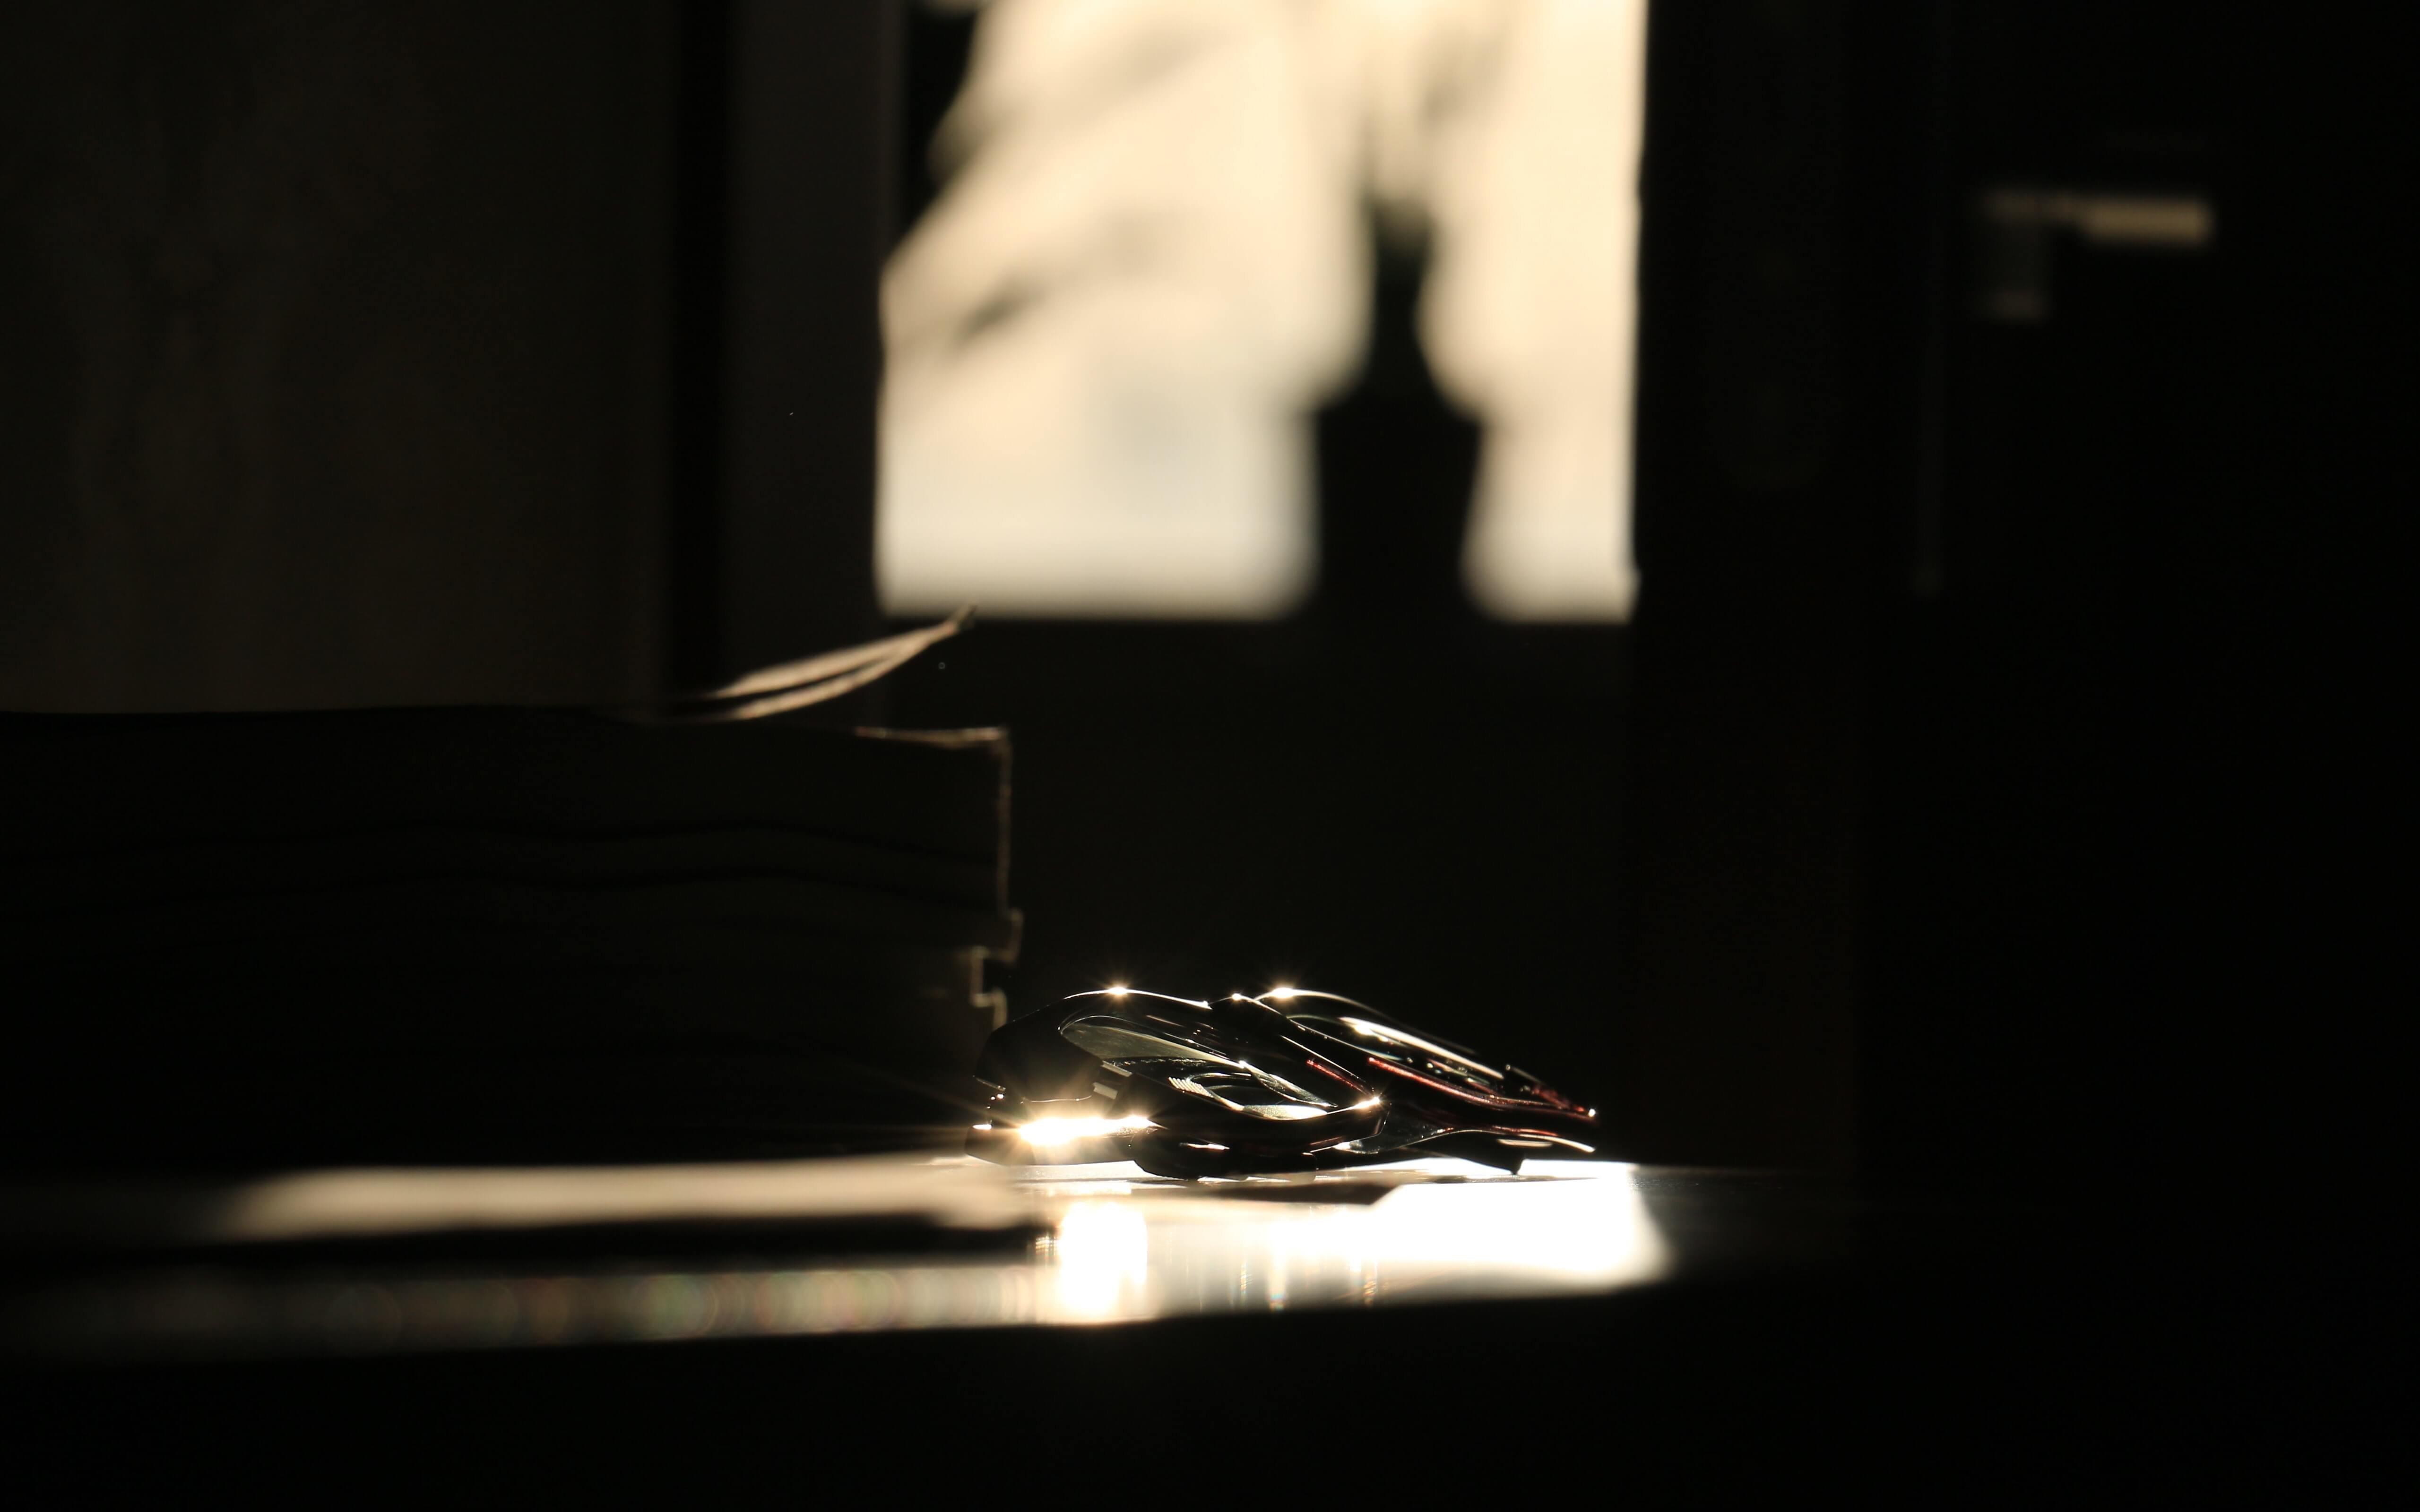 Glasses on a table lit by a window from behind